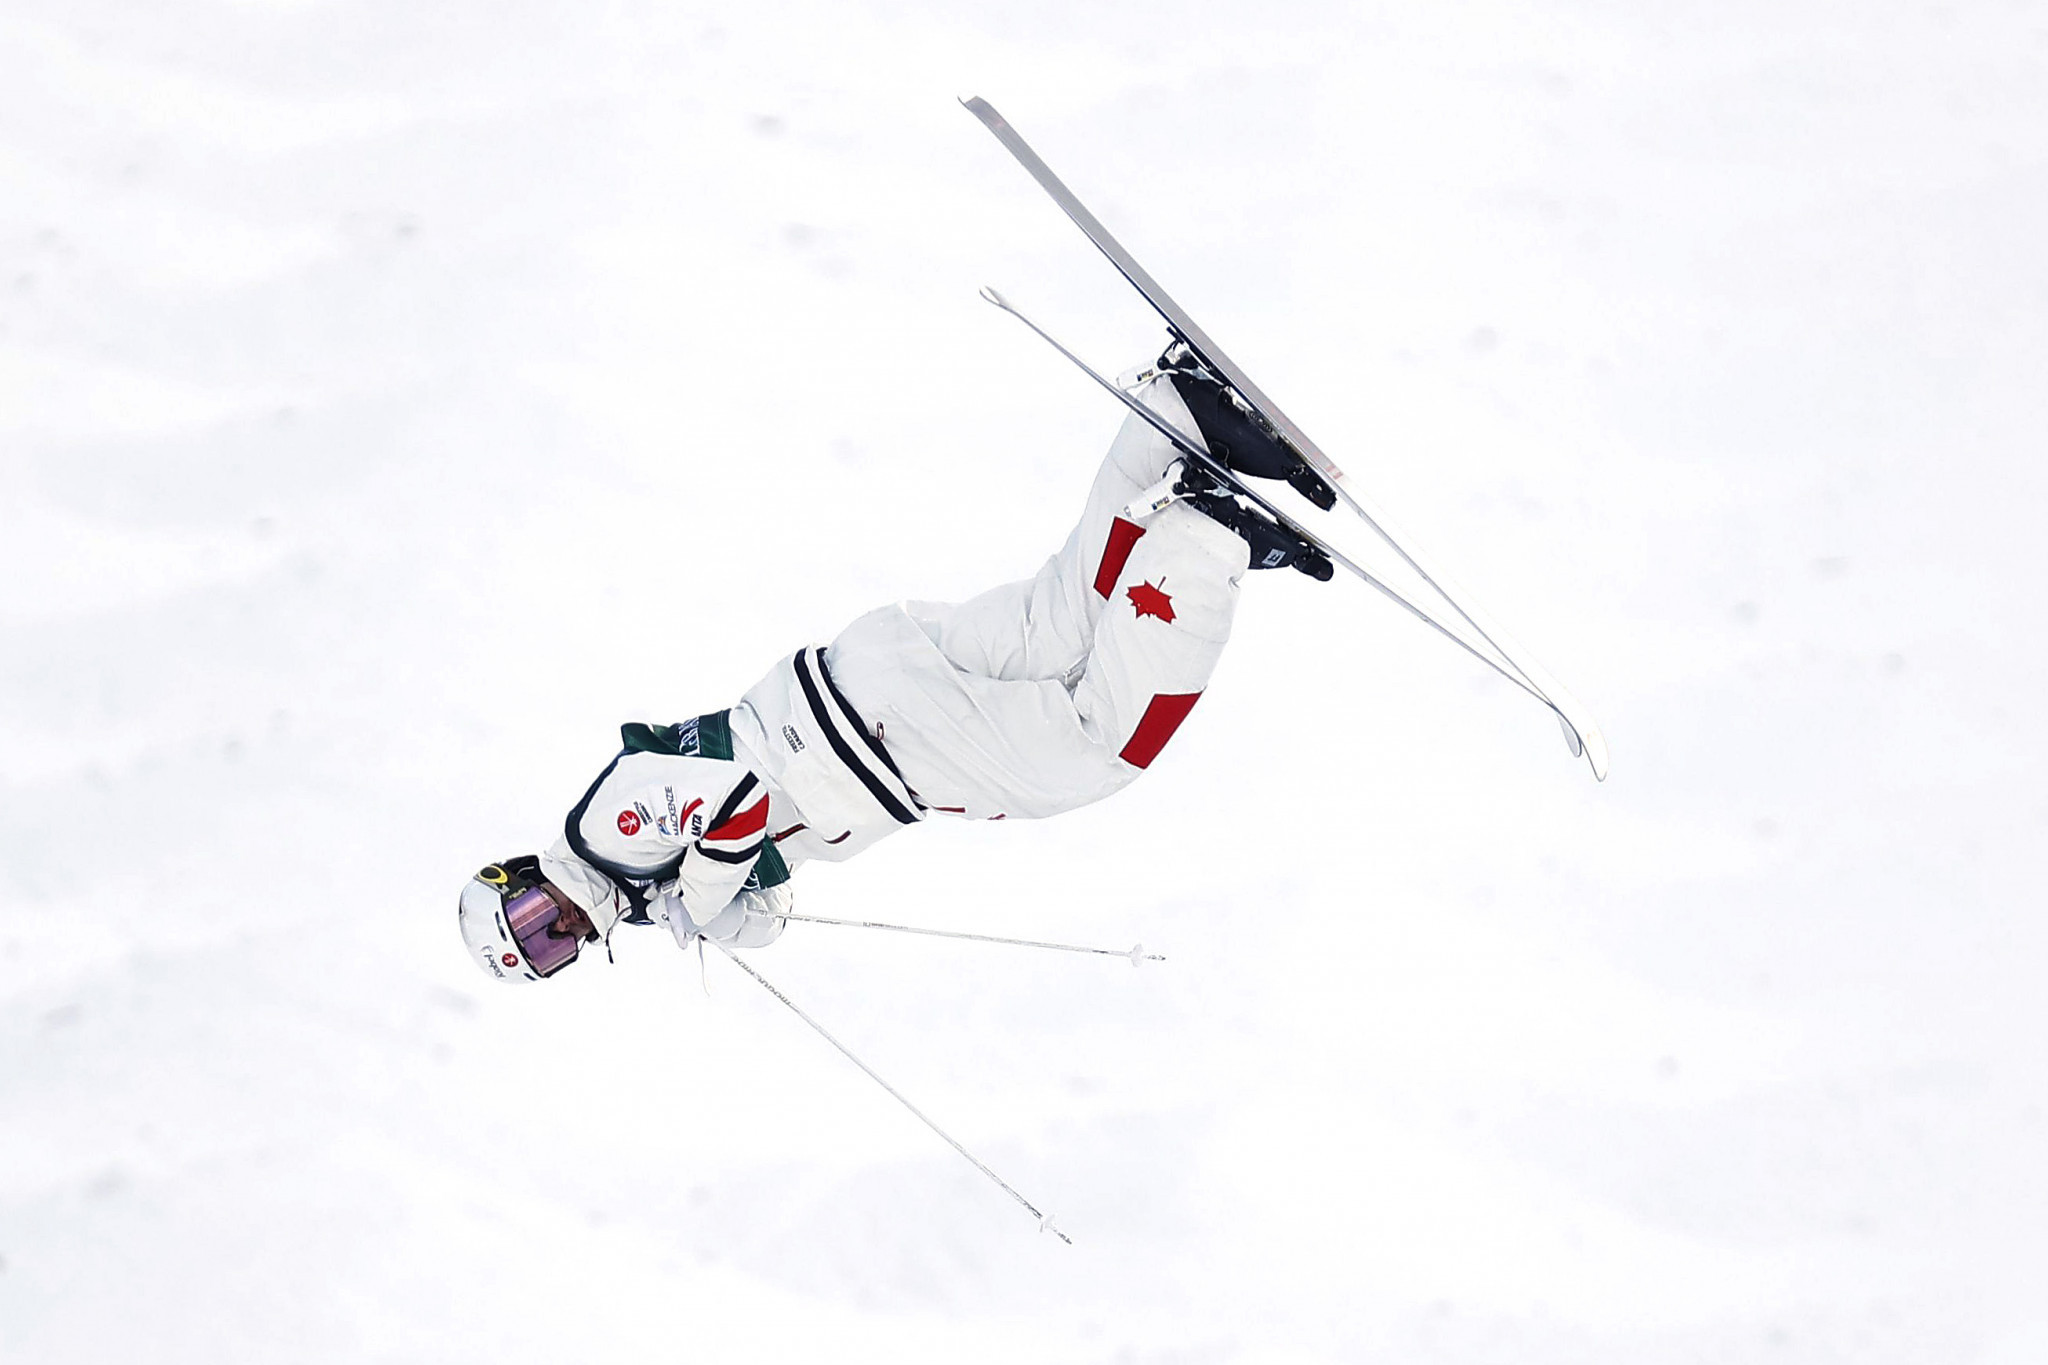 Mikaël Kingsbury did the moguls and dual moguls double in Deer Valley ©Getty Images